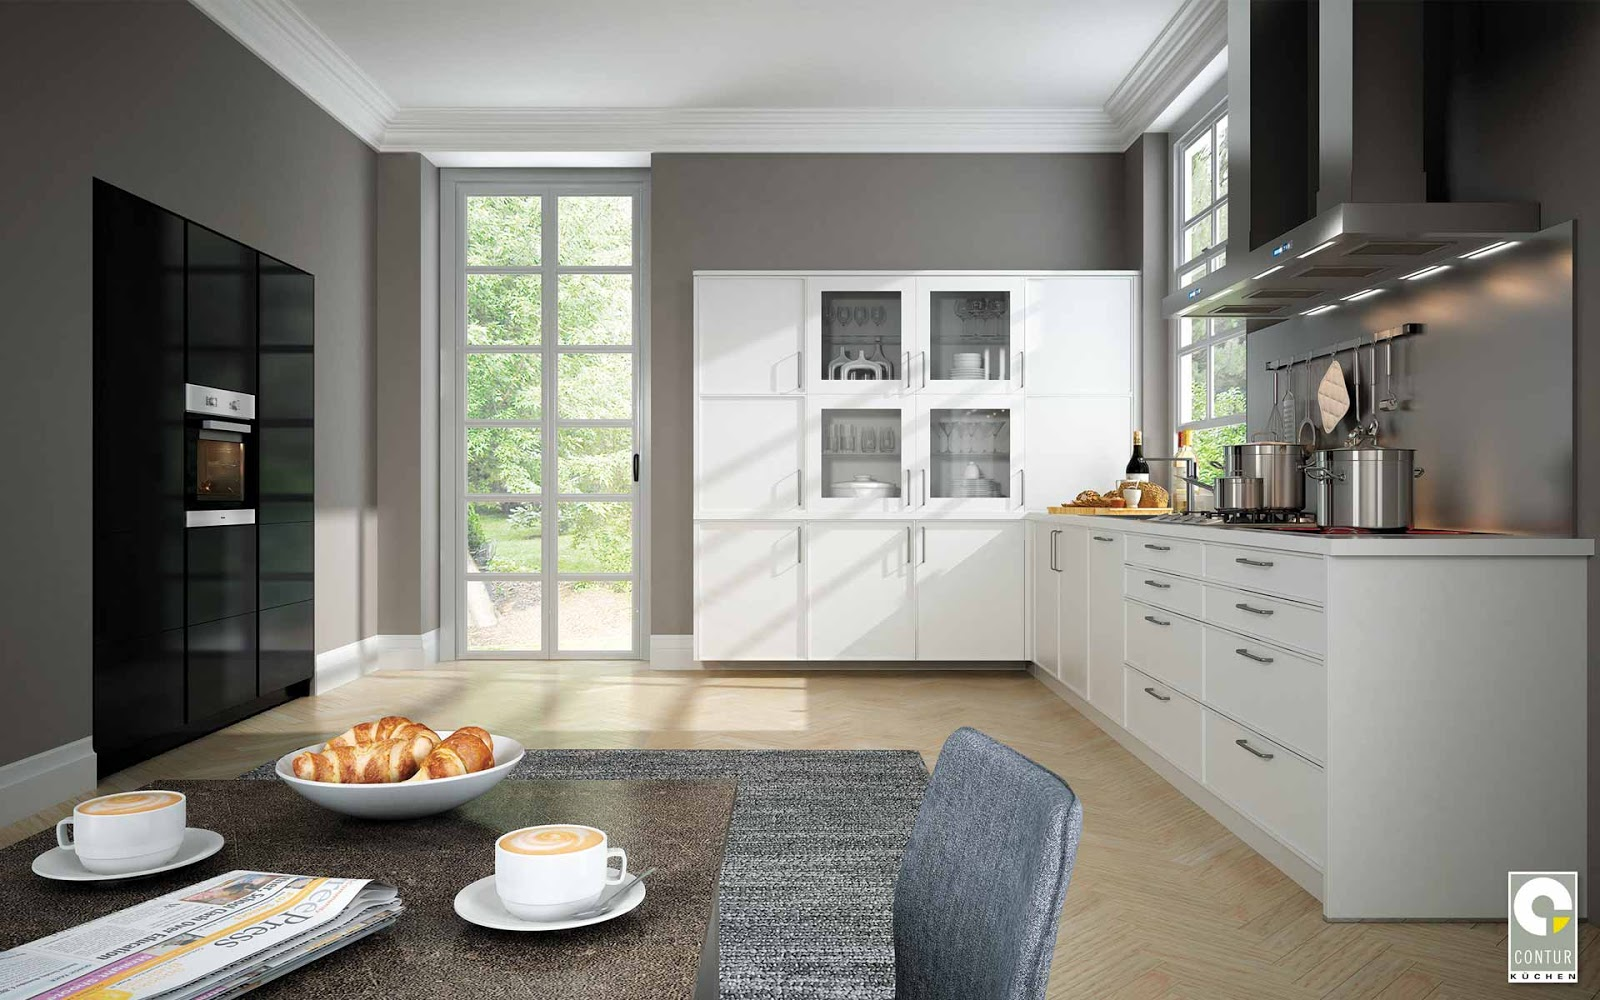 kuchen aktuell seevetal appetitlich foto blog f r sie. Black Bedroom Furniture Sets. Home Design Ideas